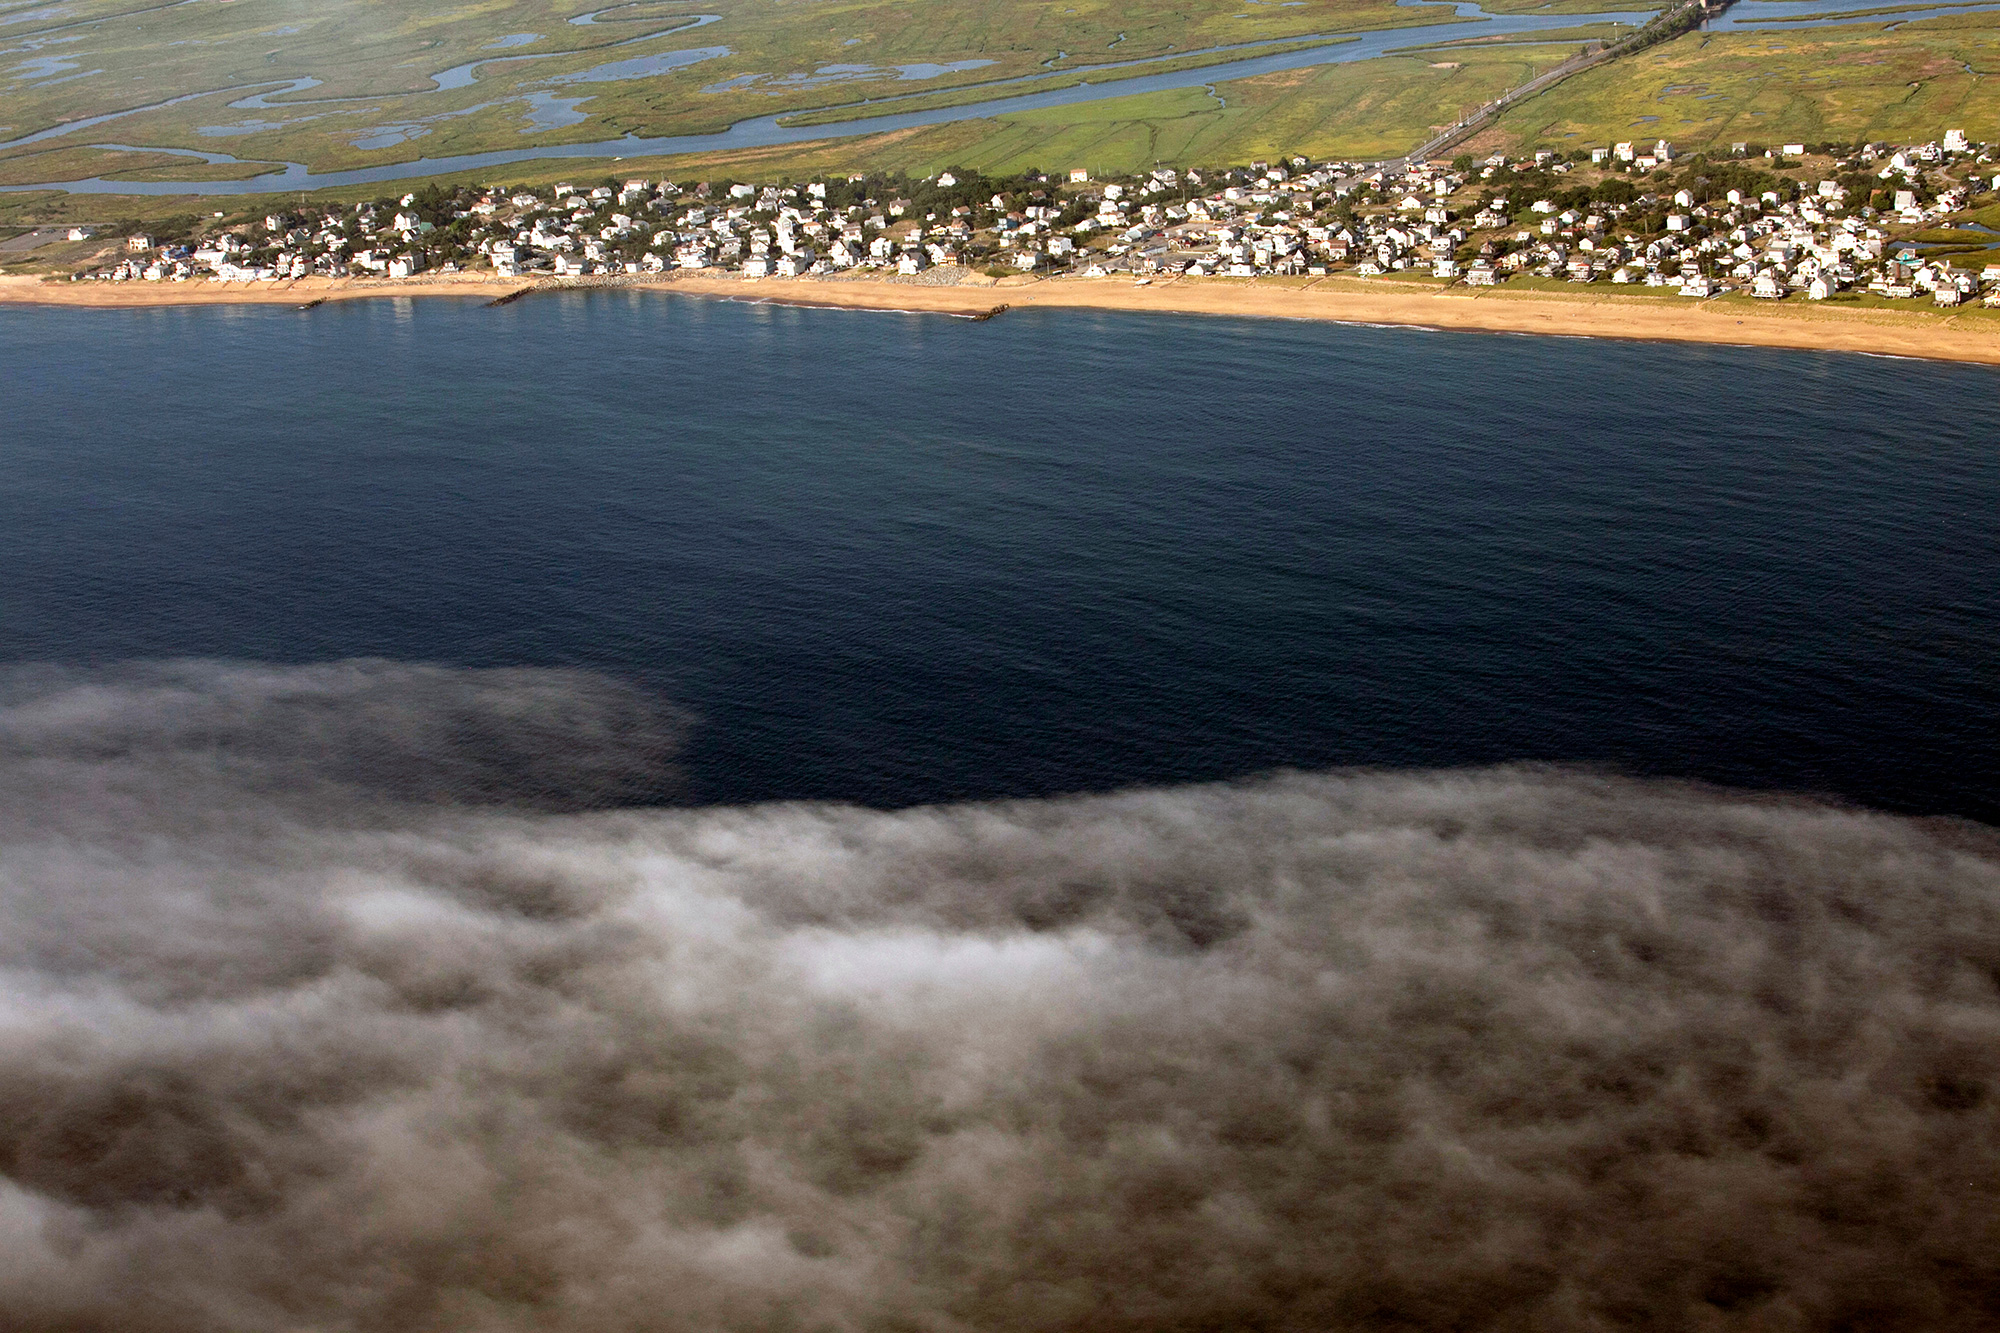 "Homes and businesses on Plum Island come face-to-face with the Atlantic Ocean.  ""The big problem with climate change and sea level rise is that it's a slow motion disaster and people don't really perceive that it's happening,"" says Mike Morris of Storm Surge, a nonprofit organization in nearby Newburyport that helps communities prepare for the effects of climate change. (Photo by Lauren Owens Lambert/GroundTruth)"